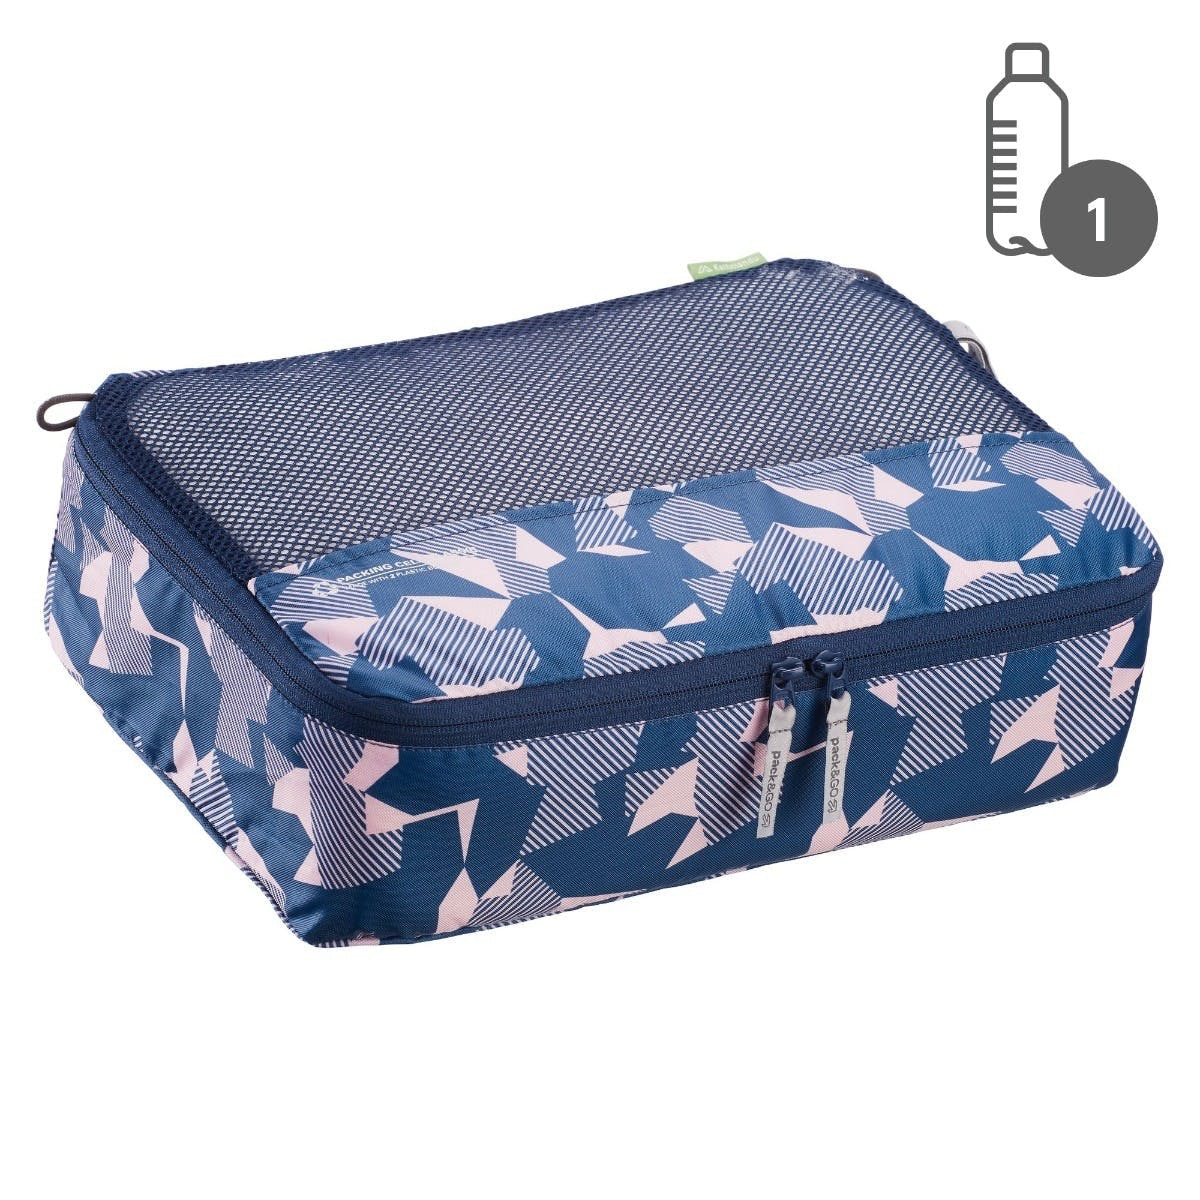 Travel Luggage Organiser Travel Packing Cubes Travel Organisers For Luggage Suitcases